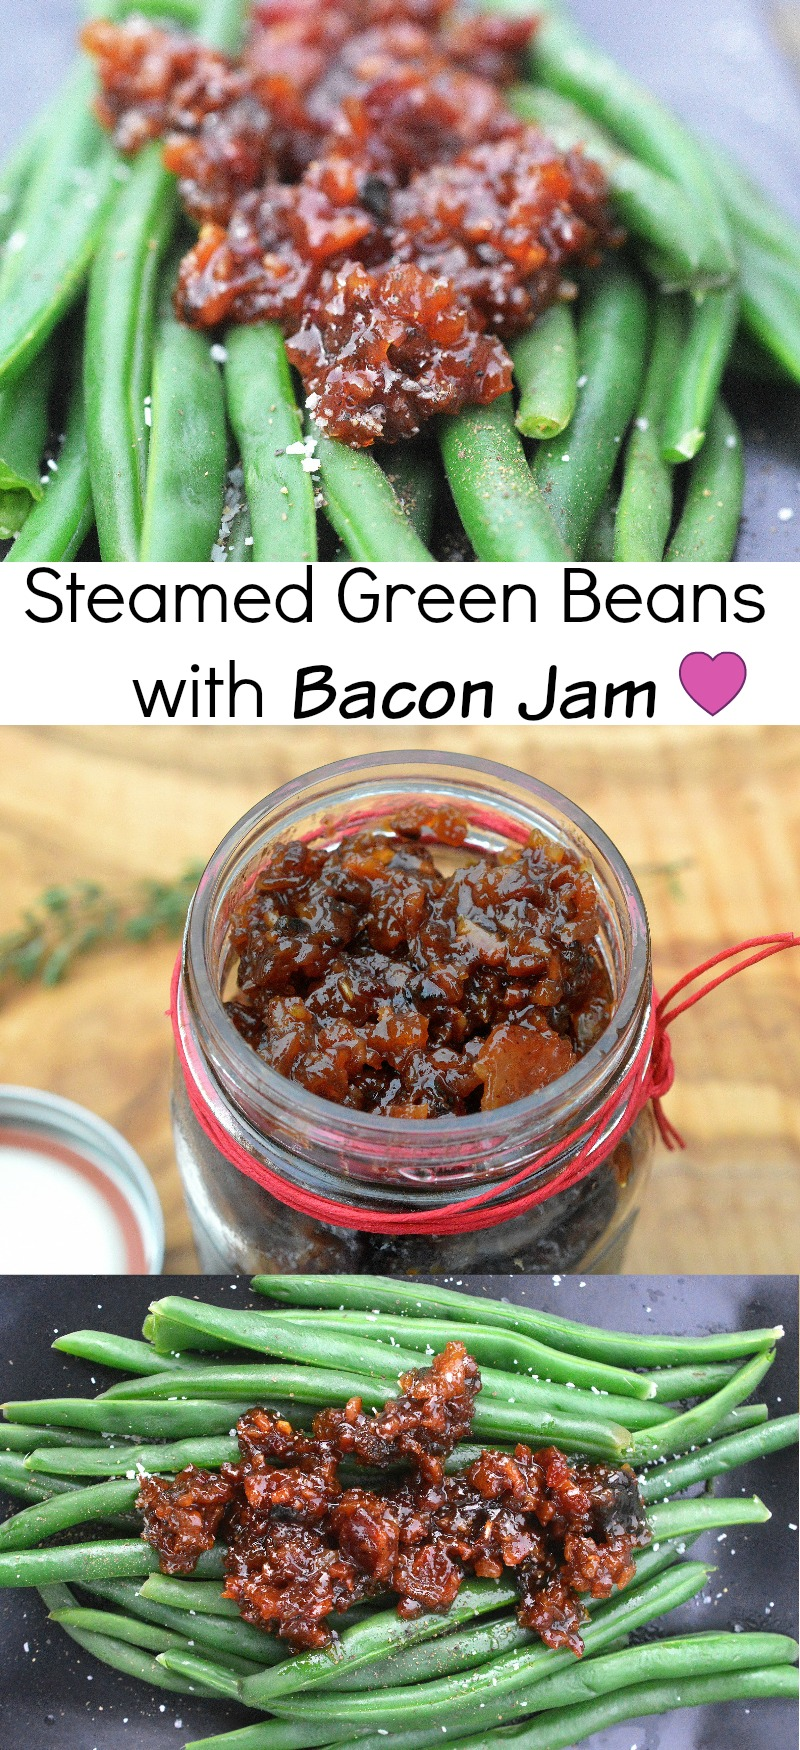 Steamed Green Beans with Bacon Jam is OMG delicious!!